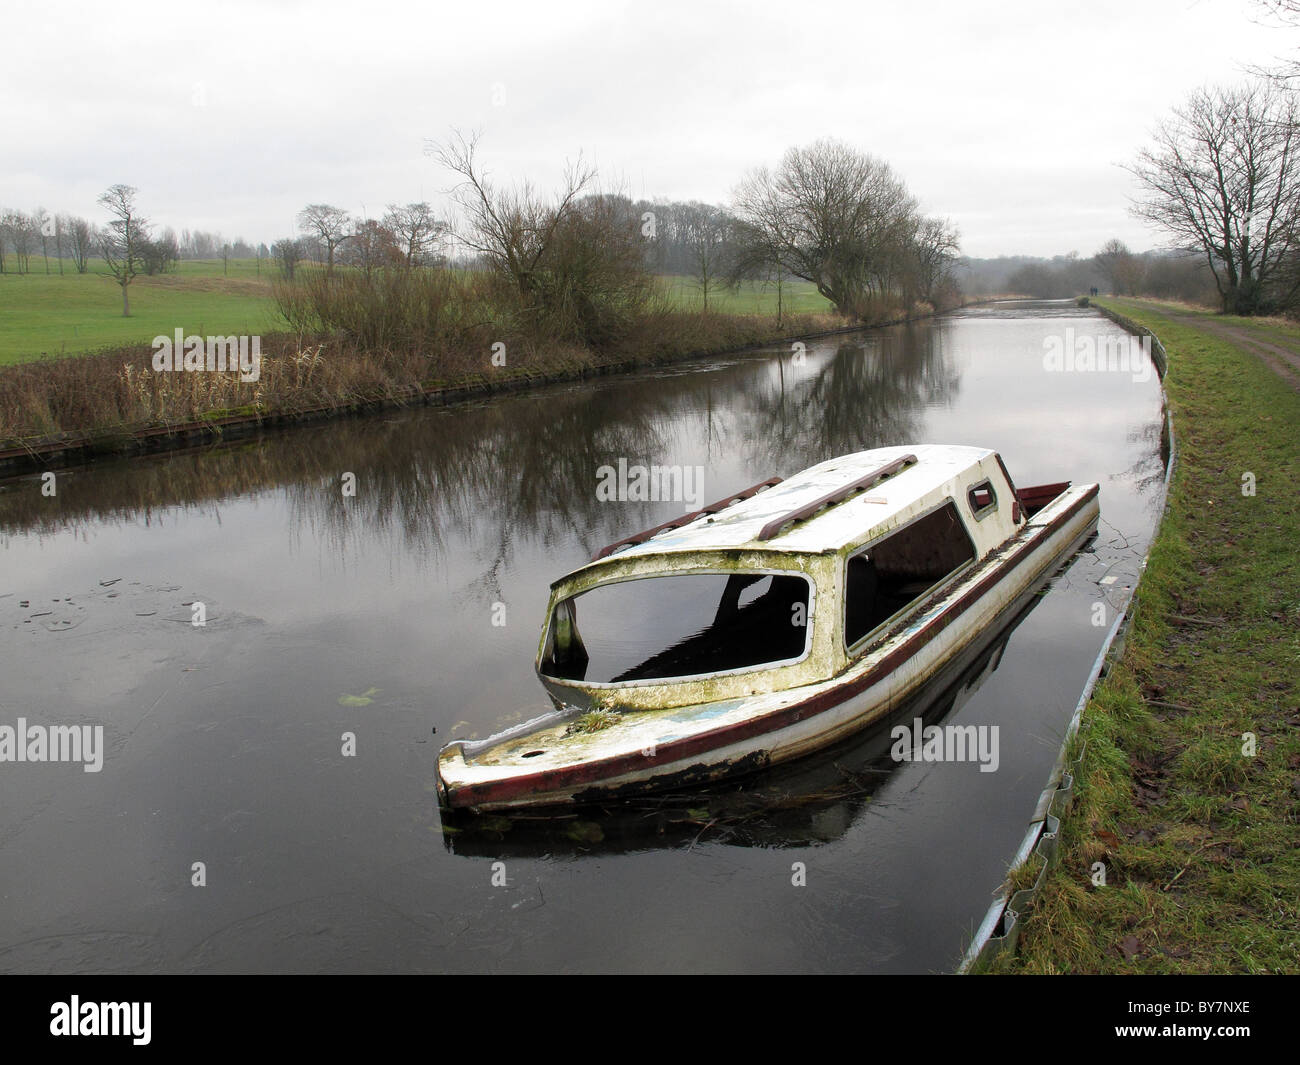 sunken boat on the Liverpool to Manchester canal near Wigan - Stock Image